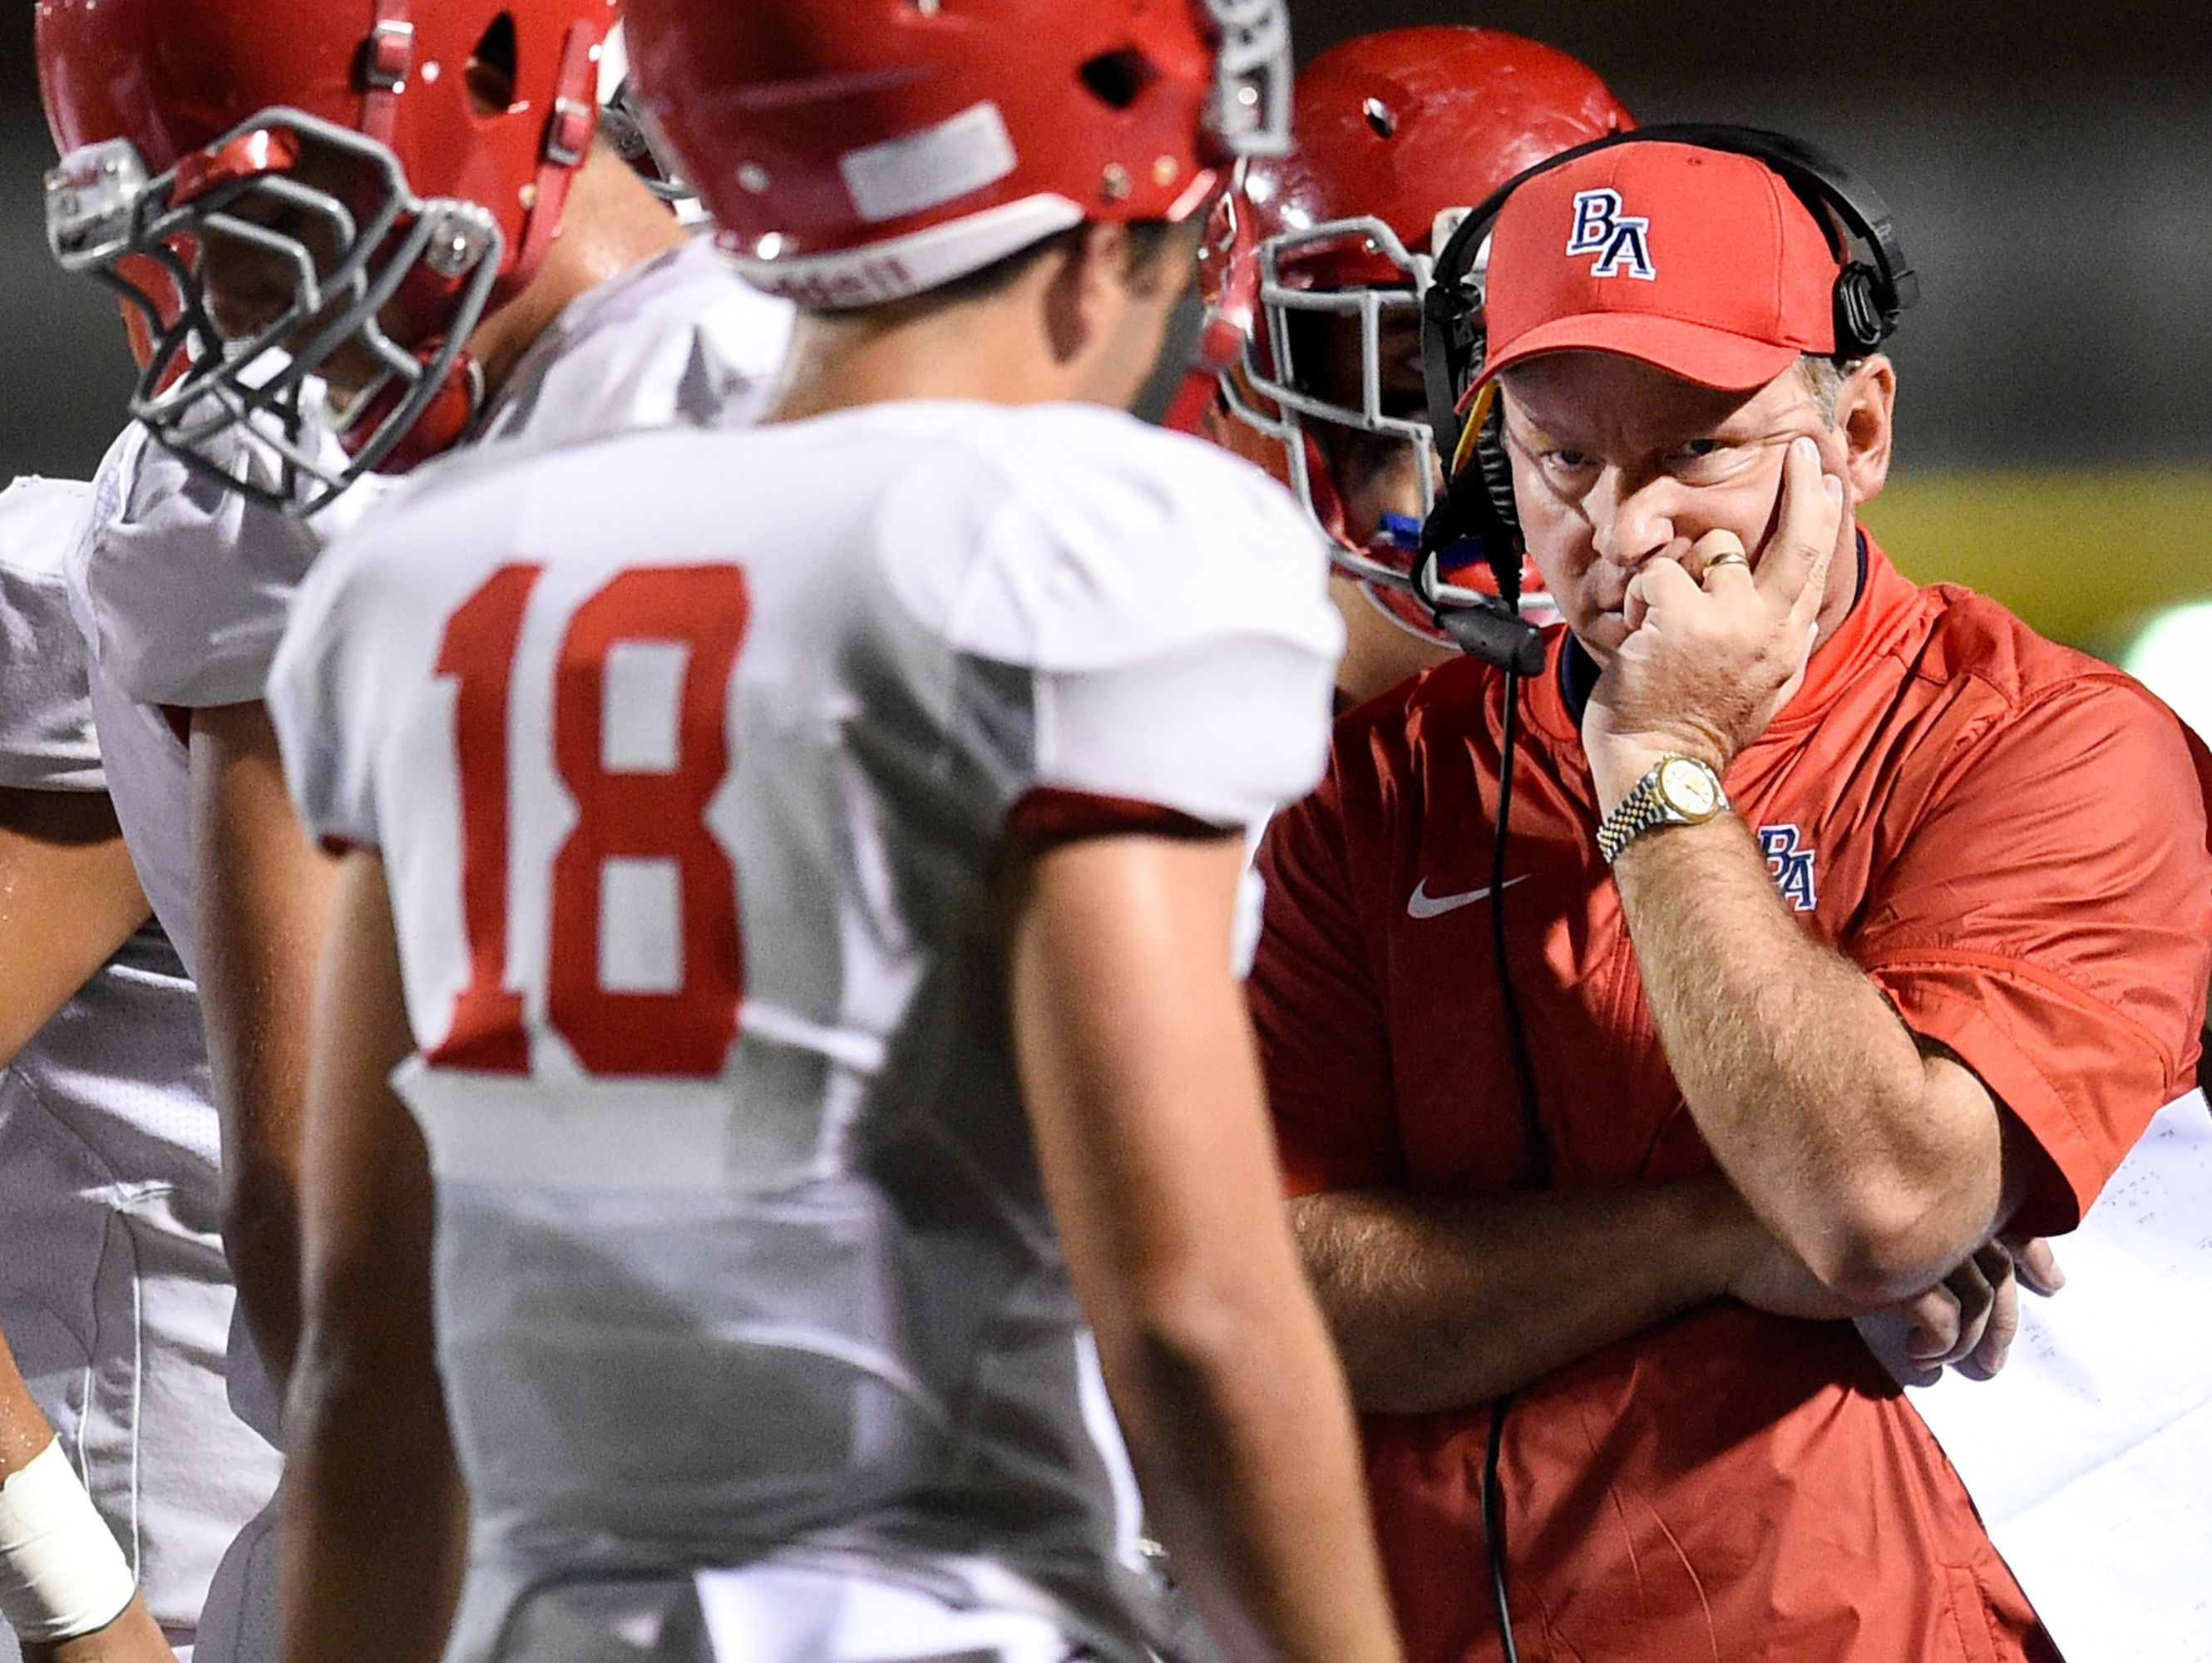 Brentwood Academy coach Cody White